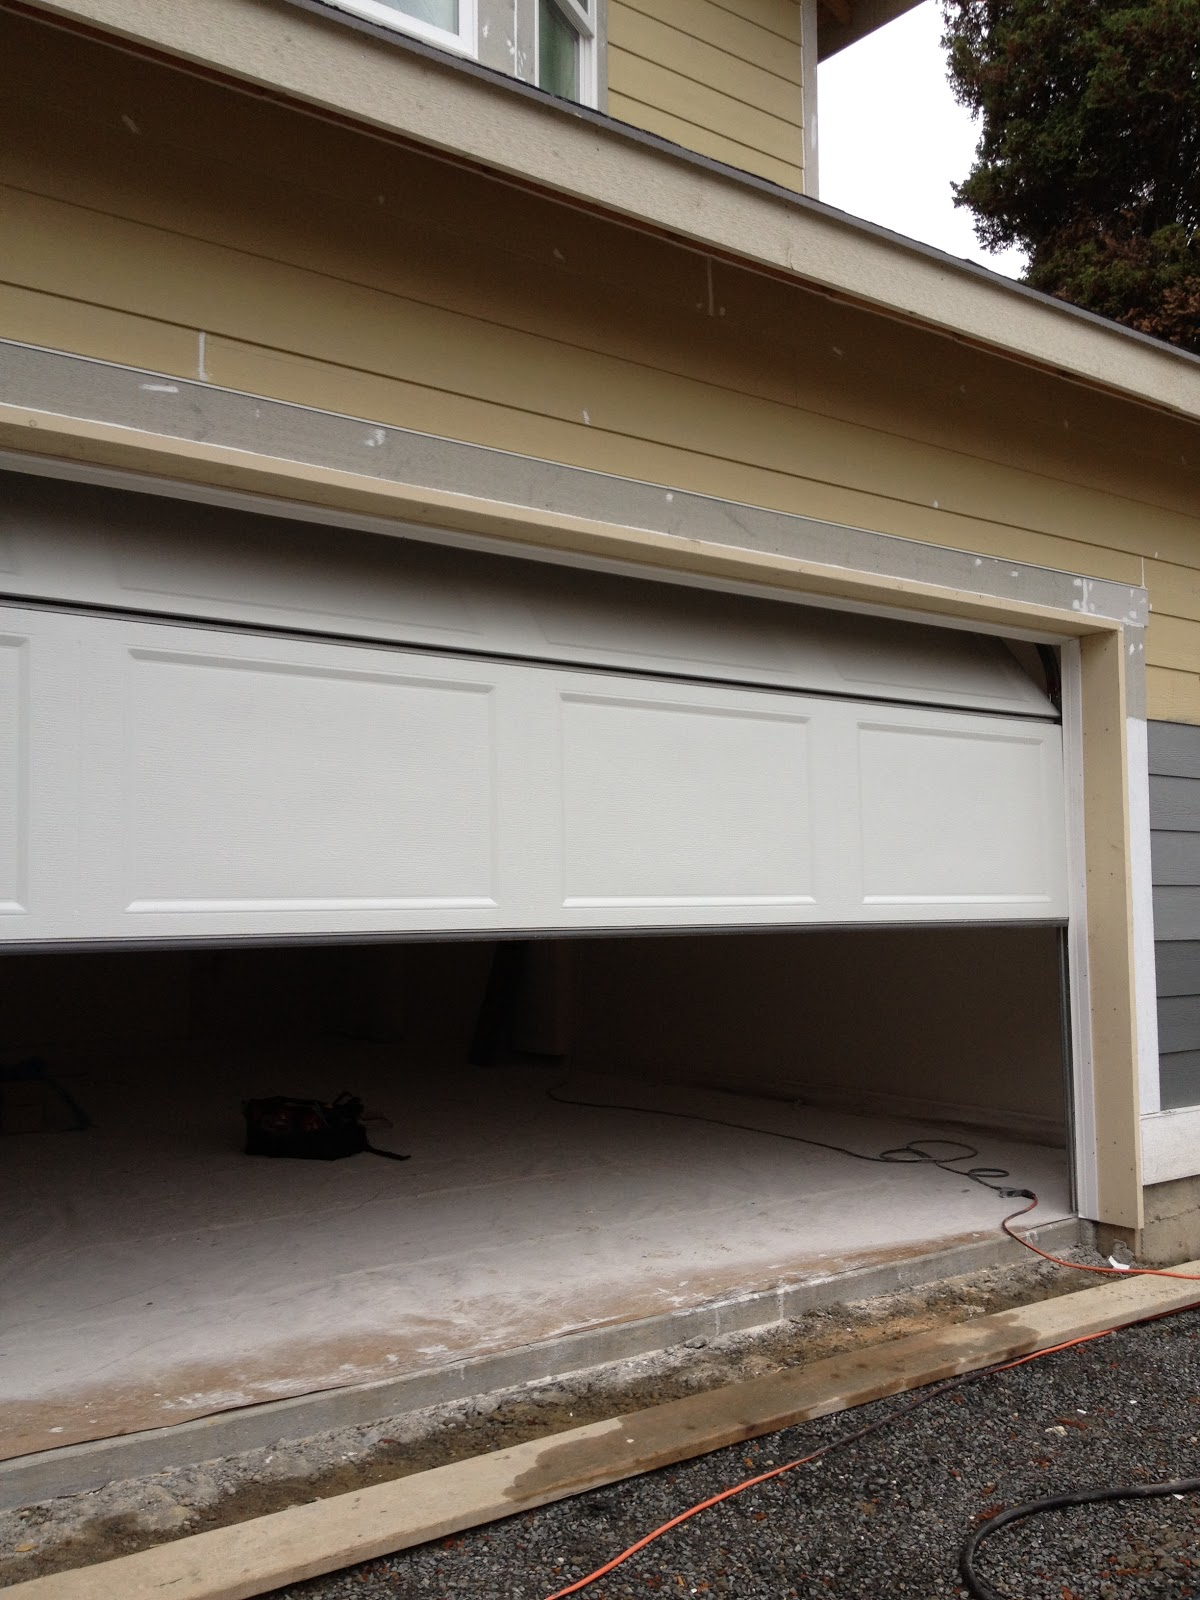 1600 #984833  Home From The Ground Up: Progress Photos Garage Door Installation pic Installed Garage Doors 37211200